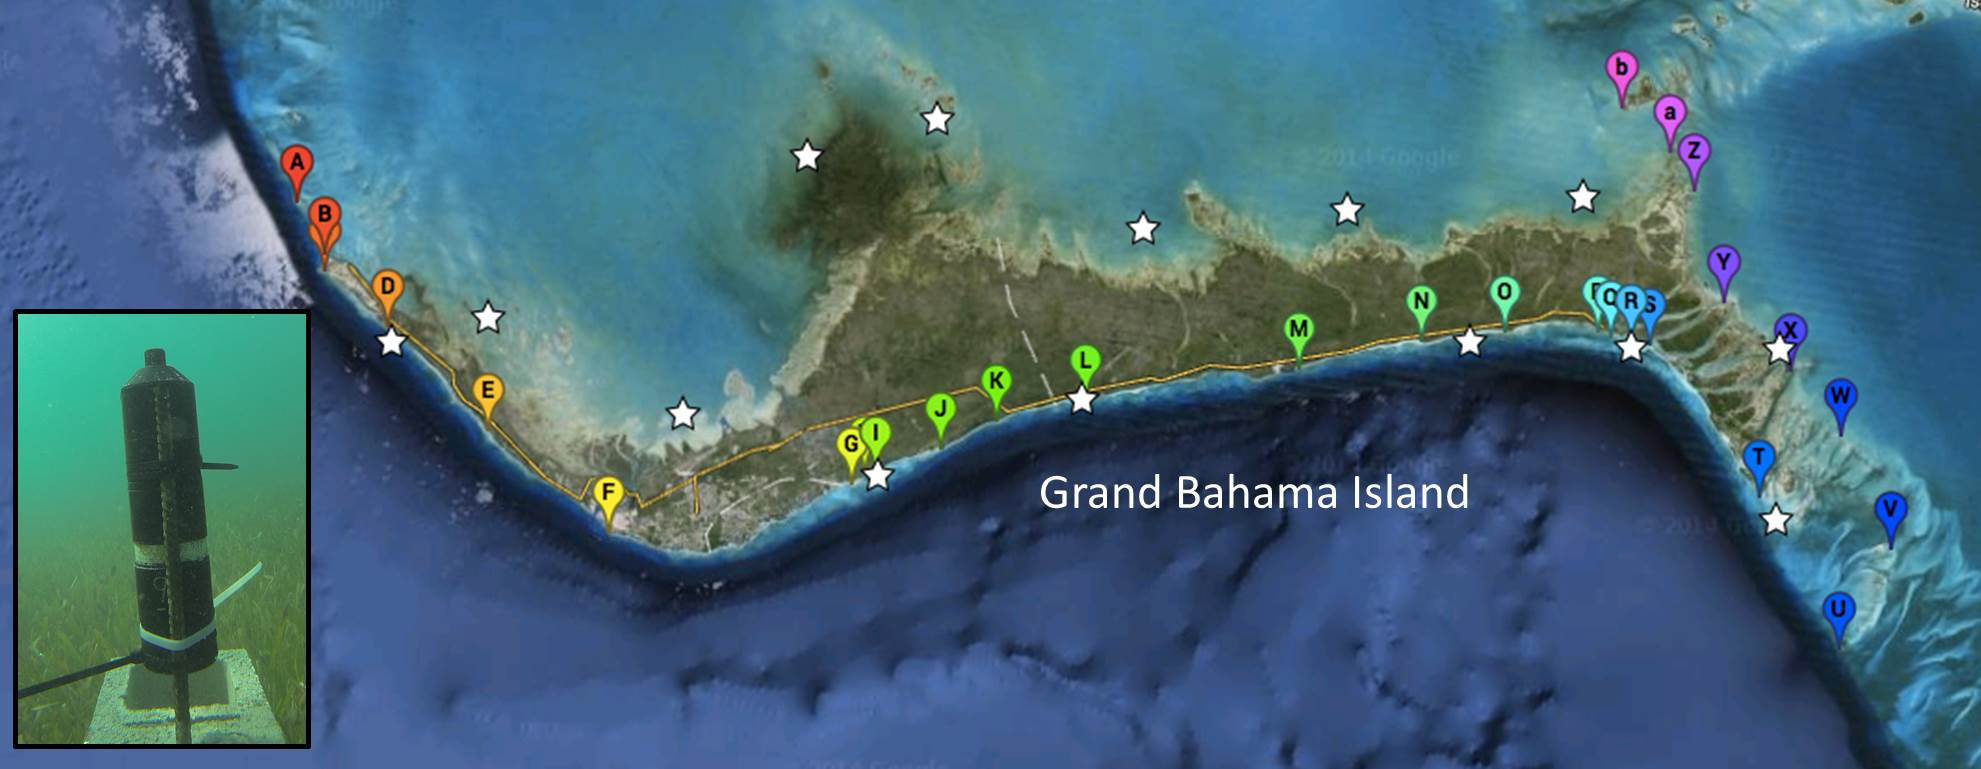 Fig. 3: Location of acoustic receivers (inset image) deployed around Grand Bahama. Bonefish typically inhabit shallow flats, but migrate as large schools to deep water during spawning events. The location of the acoustic receivers (balloons) will allow the fish to be tracked as they migrate through shallow habitat en route to spawning aggregations. Stars denote location of bonefish capture/tagging.